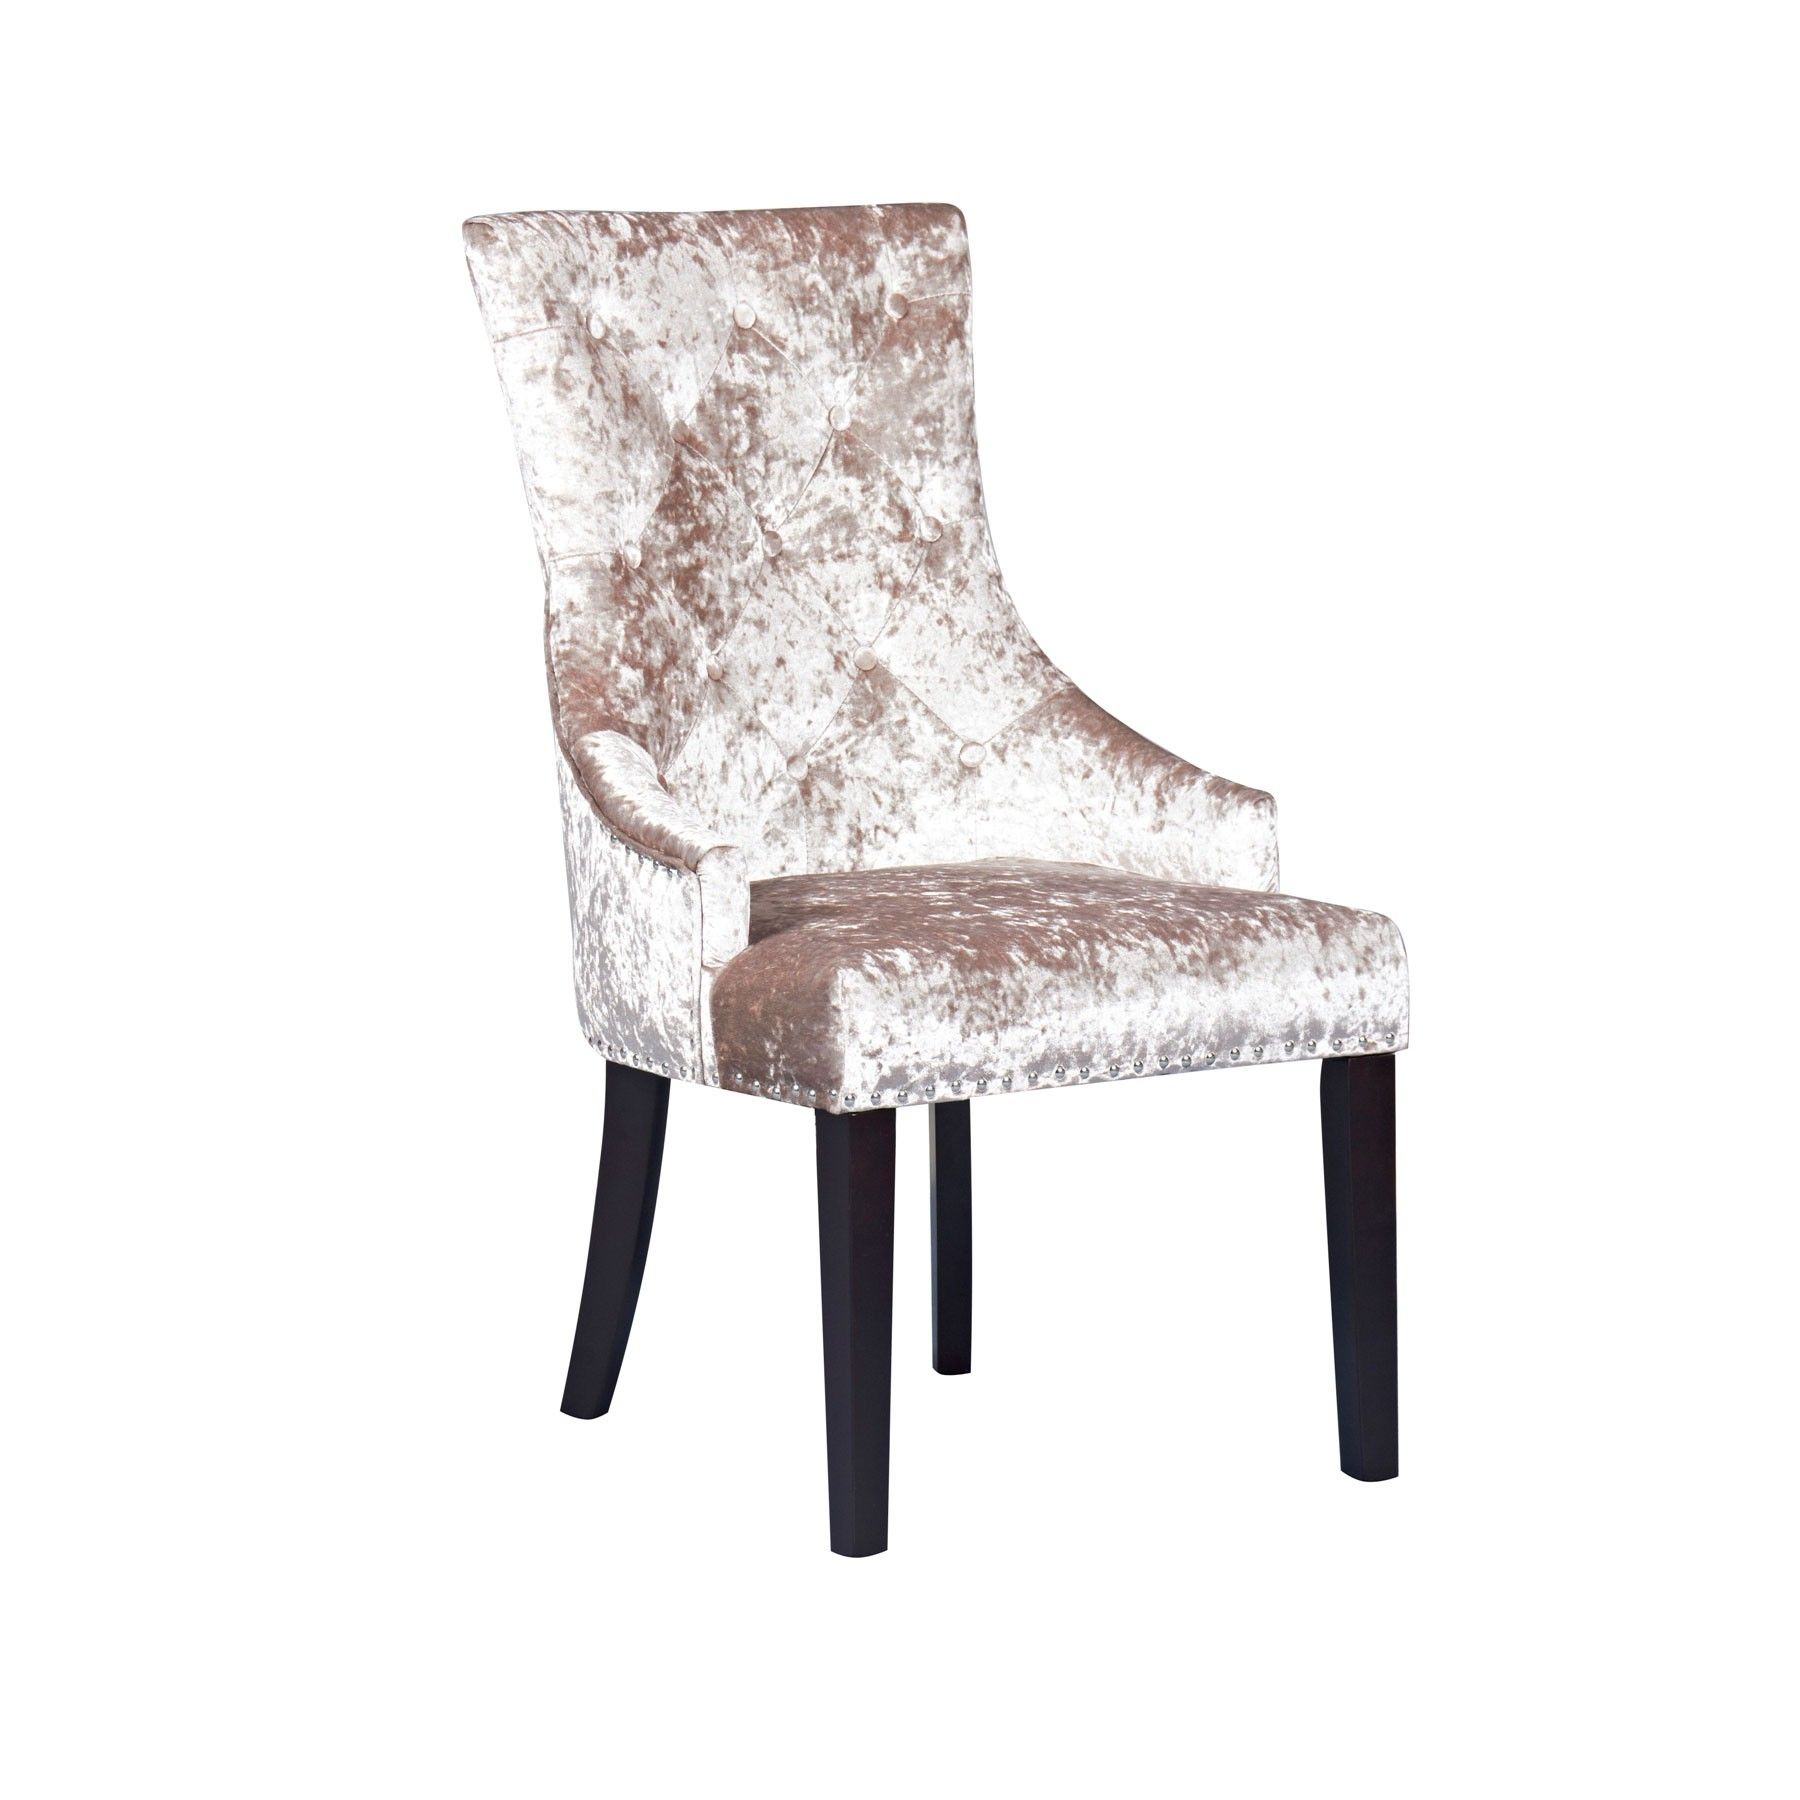 dining chair covers crushed velvet cover rental victoria bc louis mink fabric with knocker i n t e r